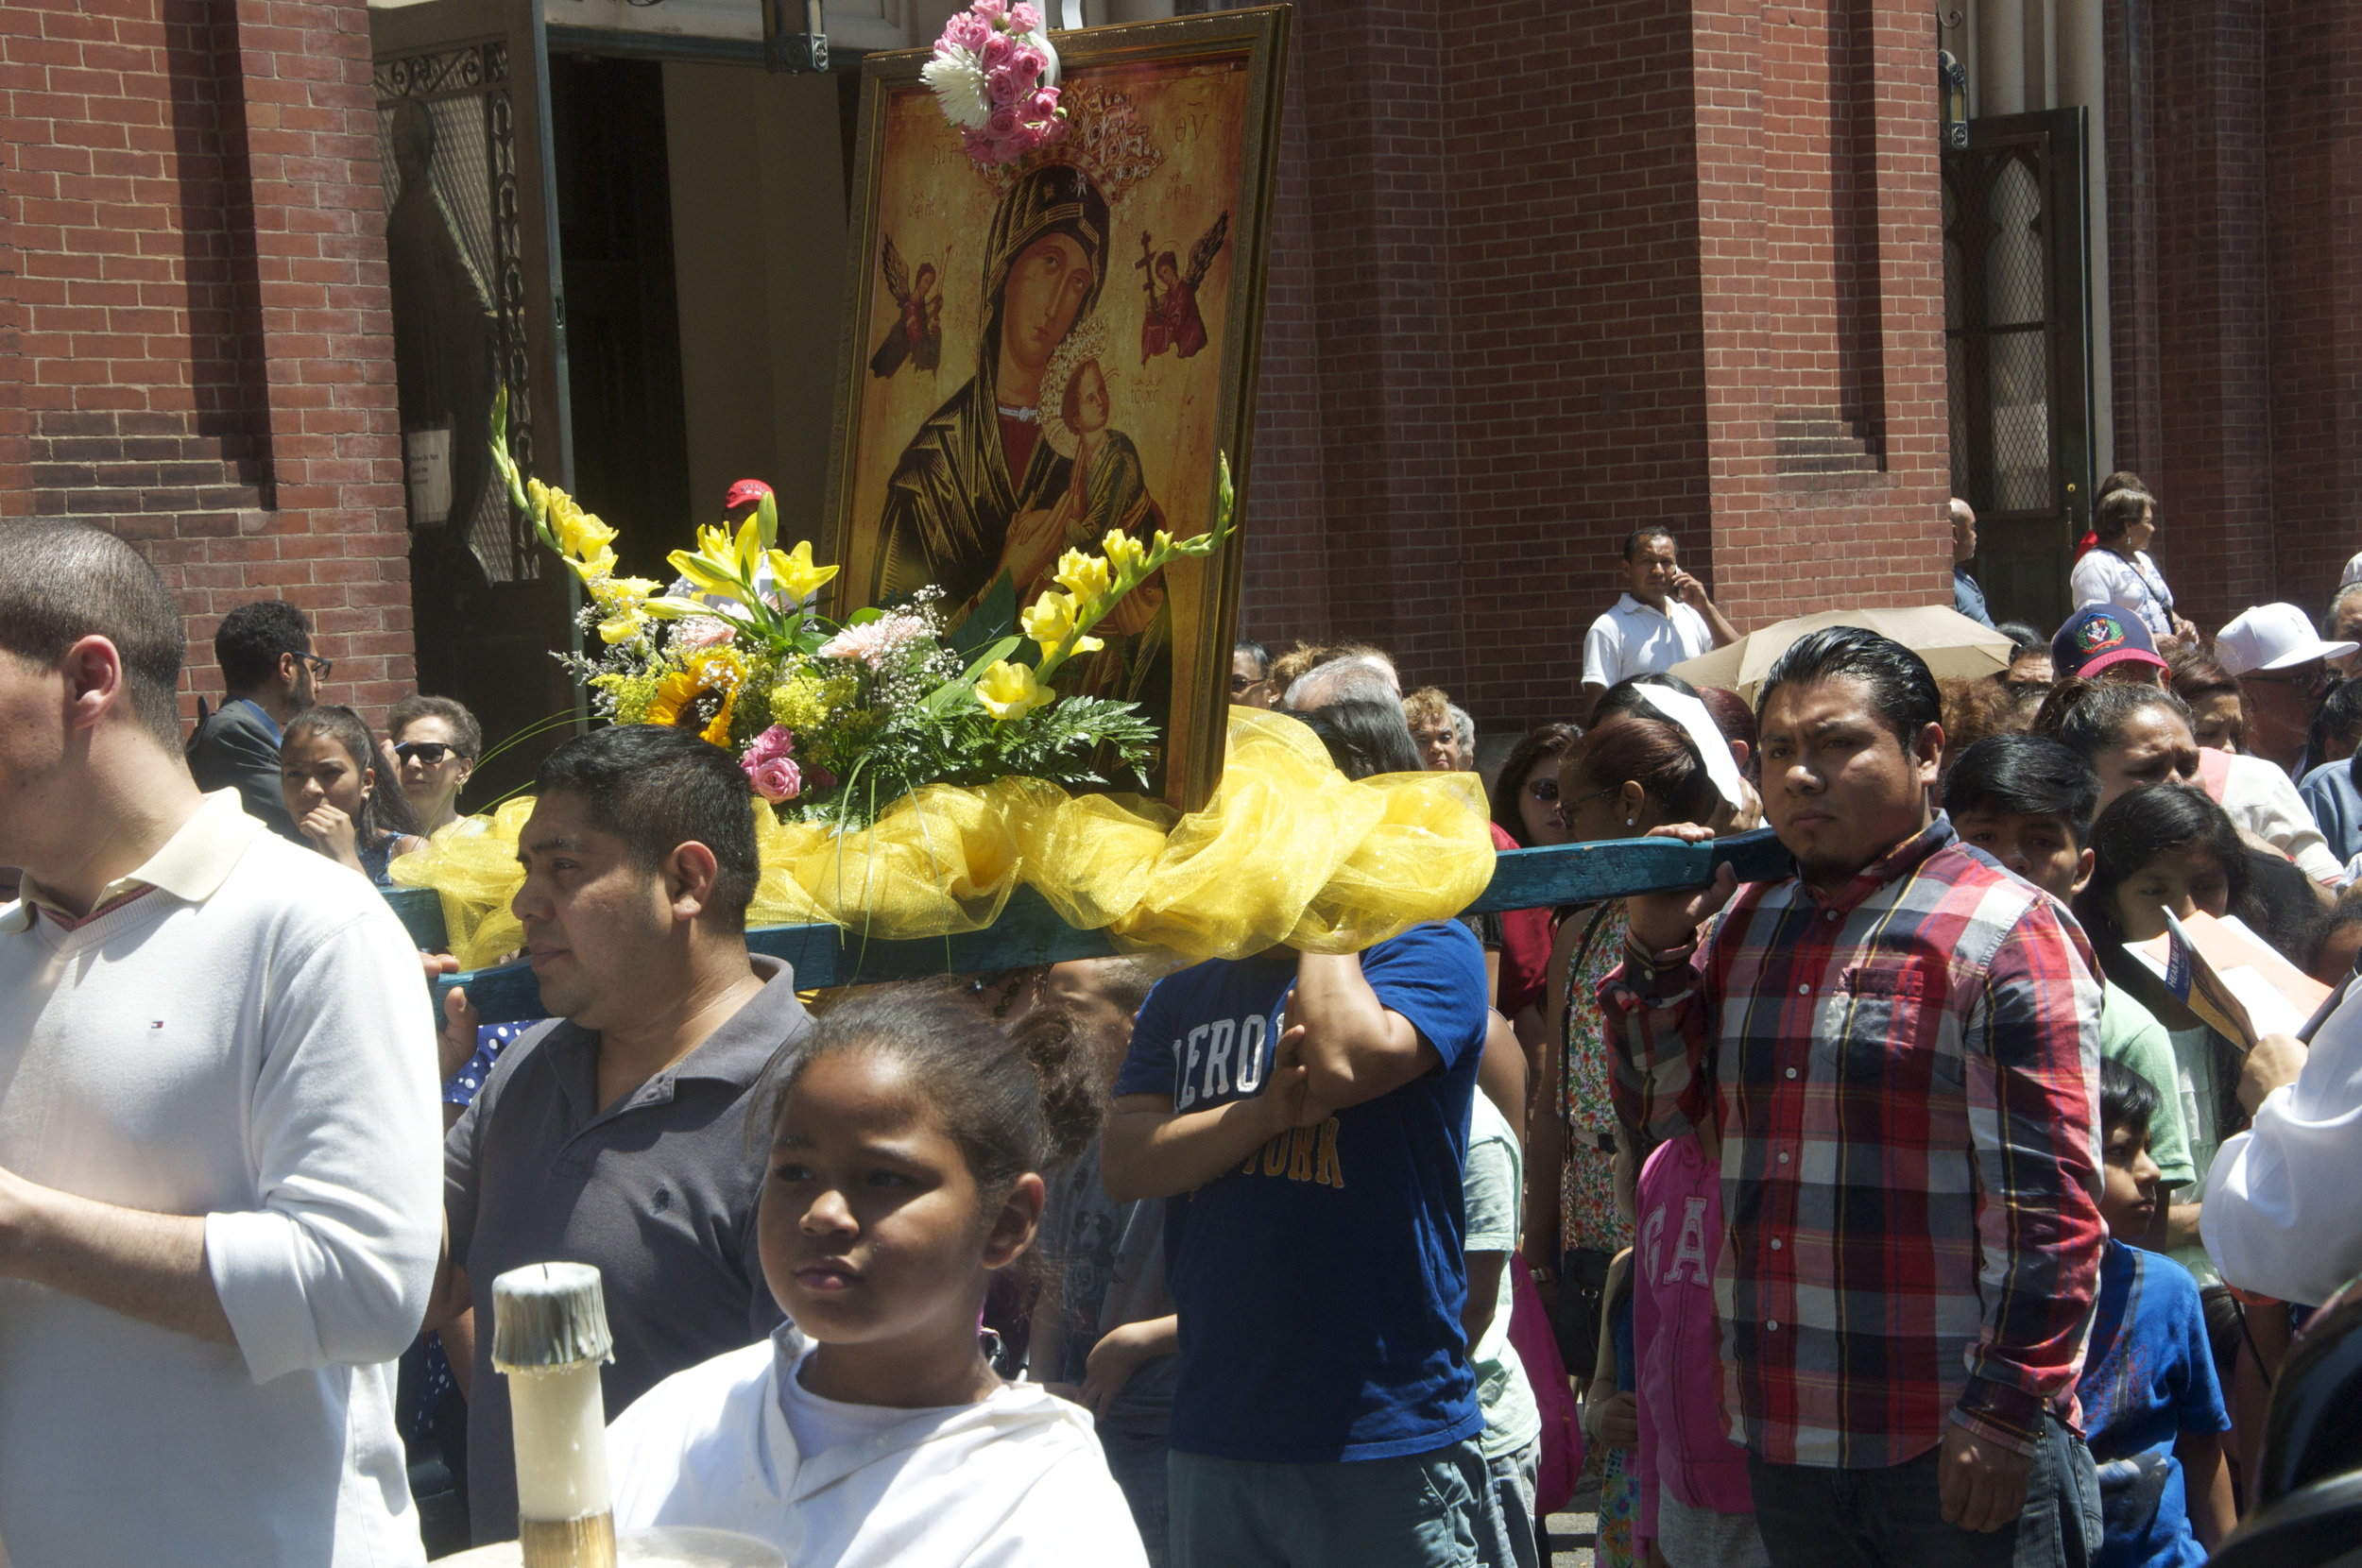 By Samali Bikangaga. Parishioners march on Courtlandt Avenue on June 26.     Parishioners fed up with high crime,NYCHA inaction, march for change